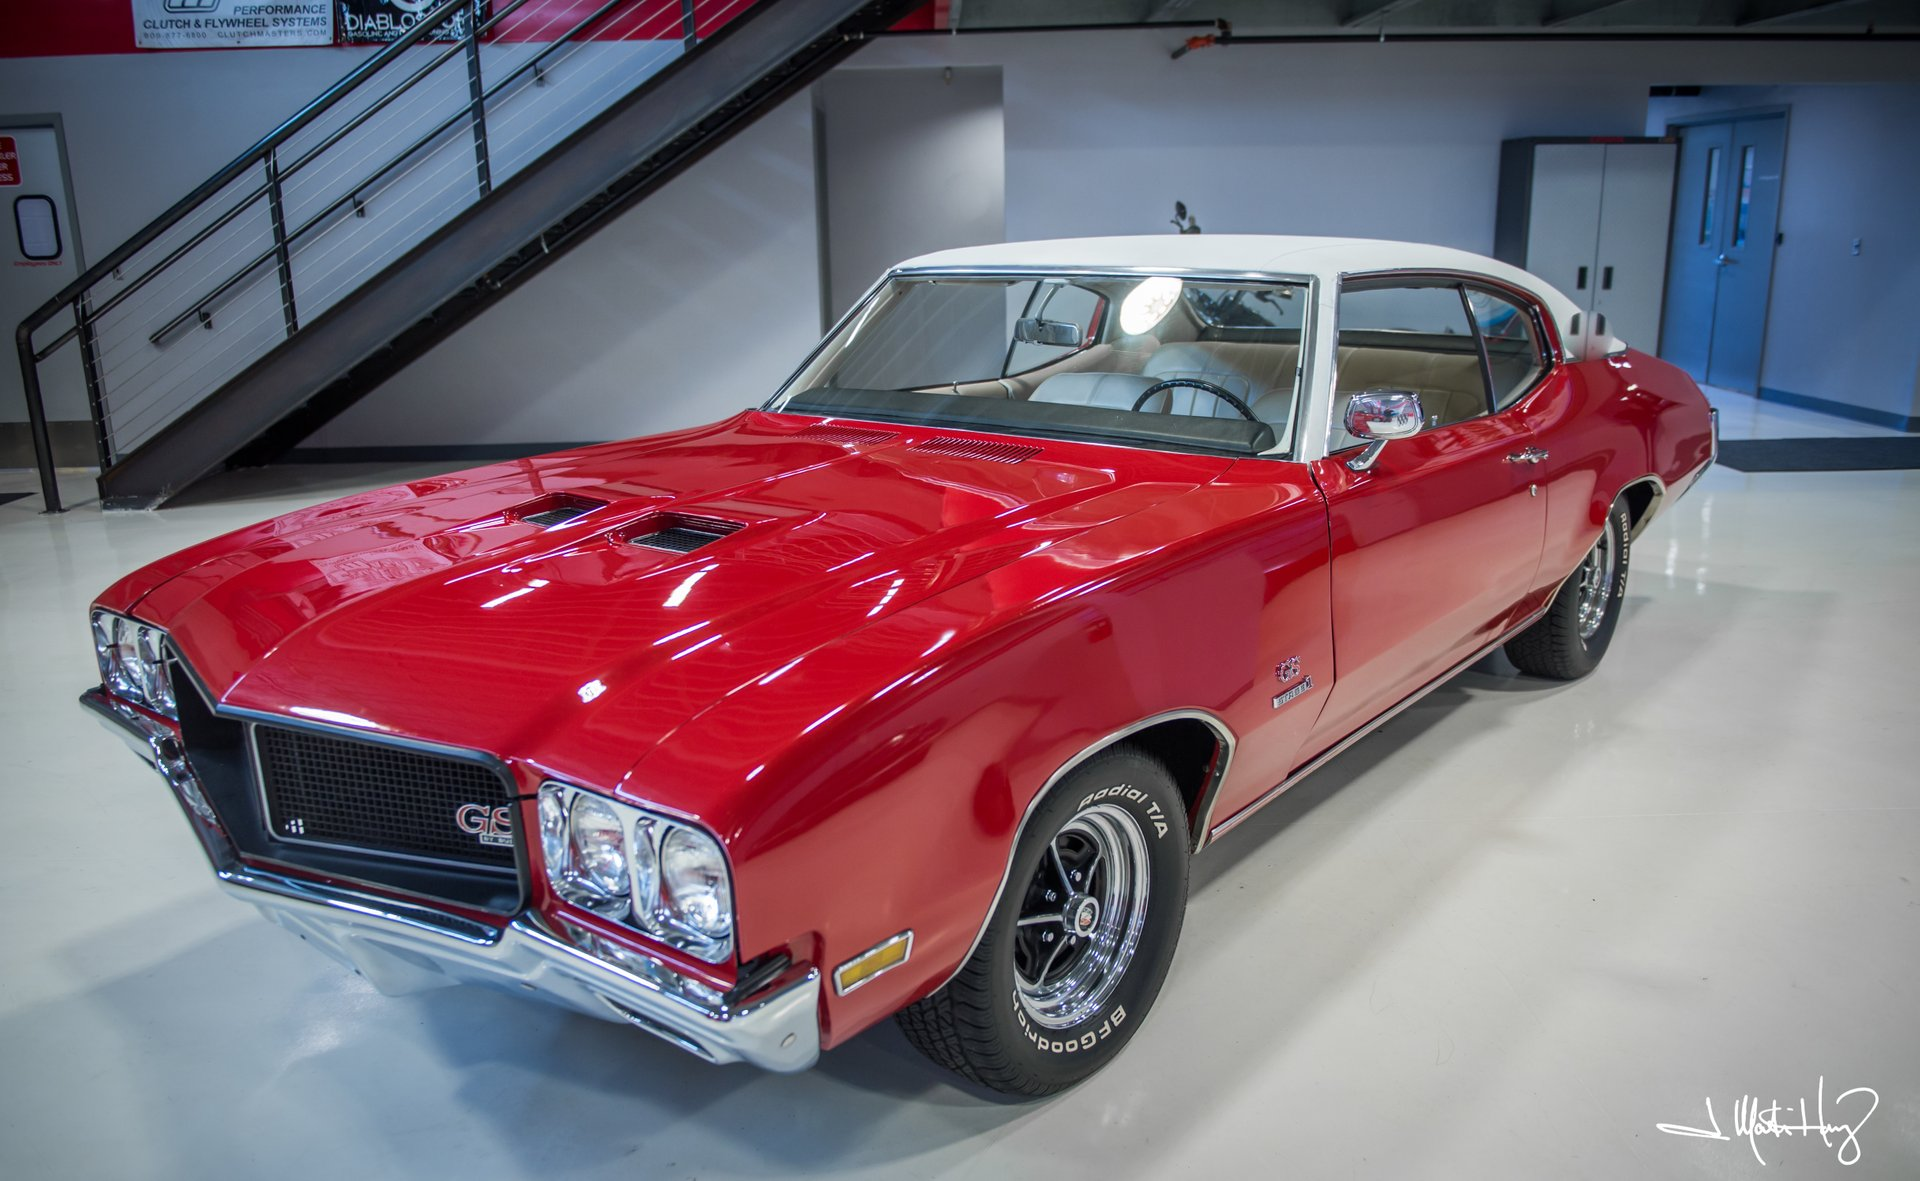 1970 buick gs 455 sport coupe